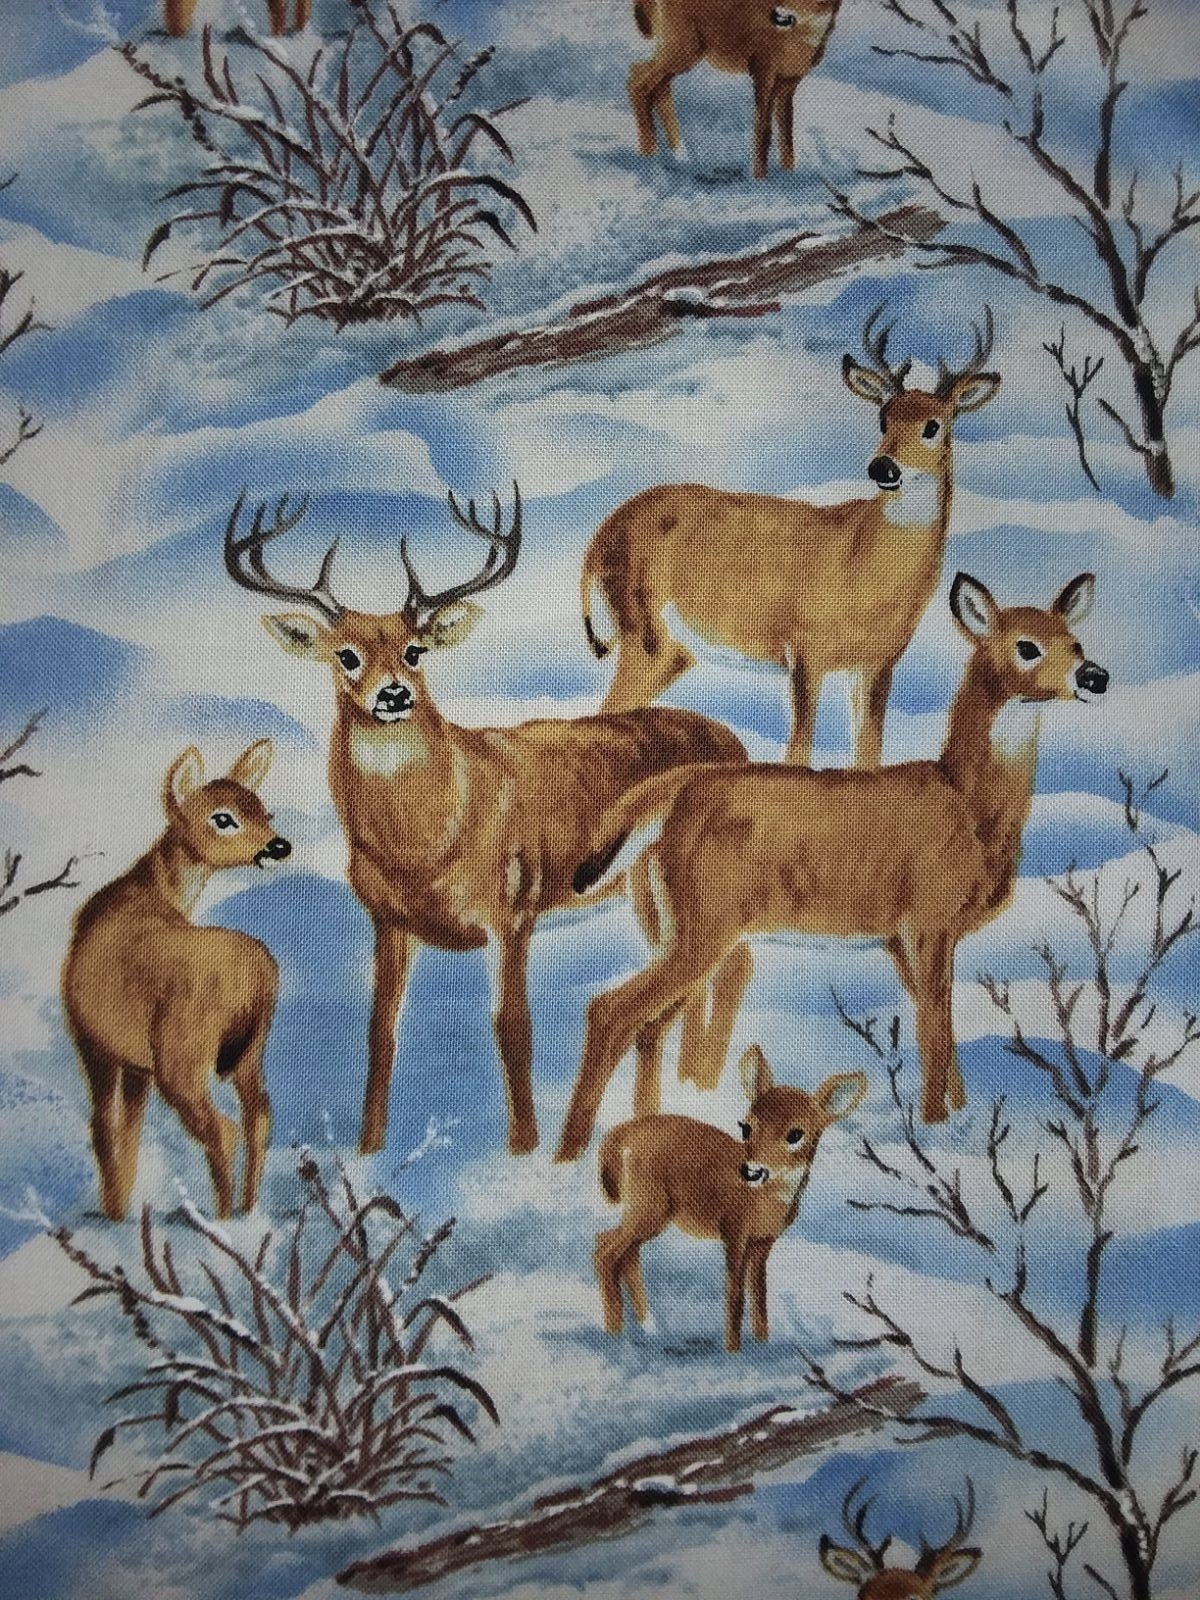 Snowscapes - Deer Landscape